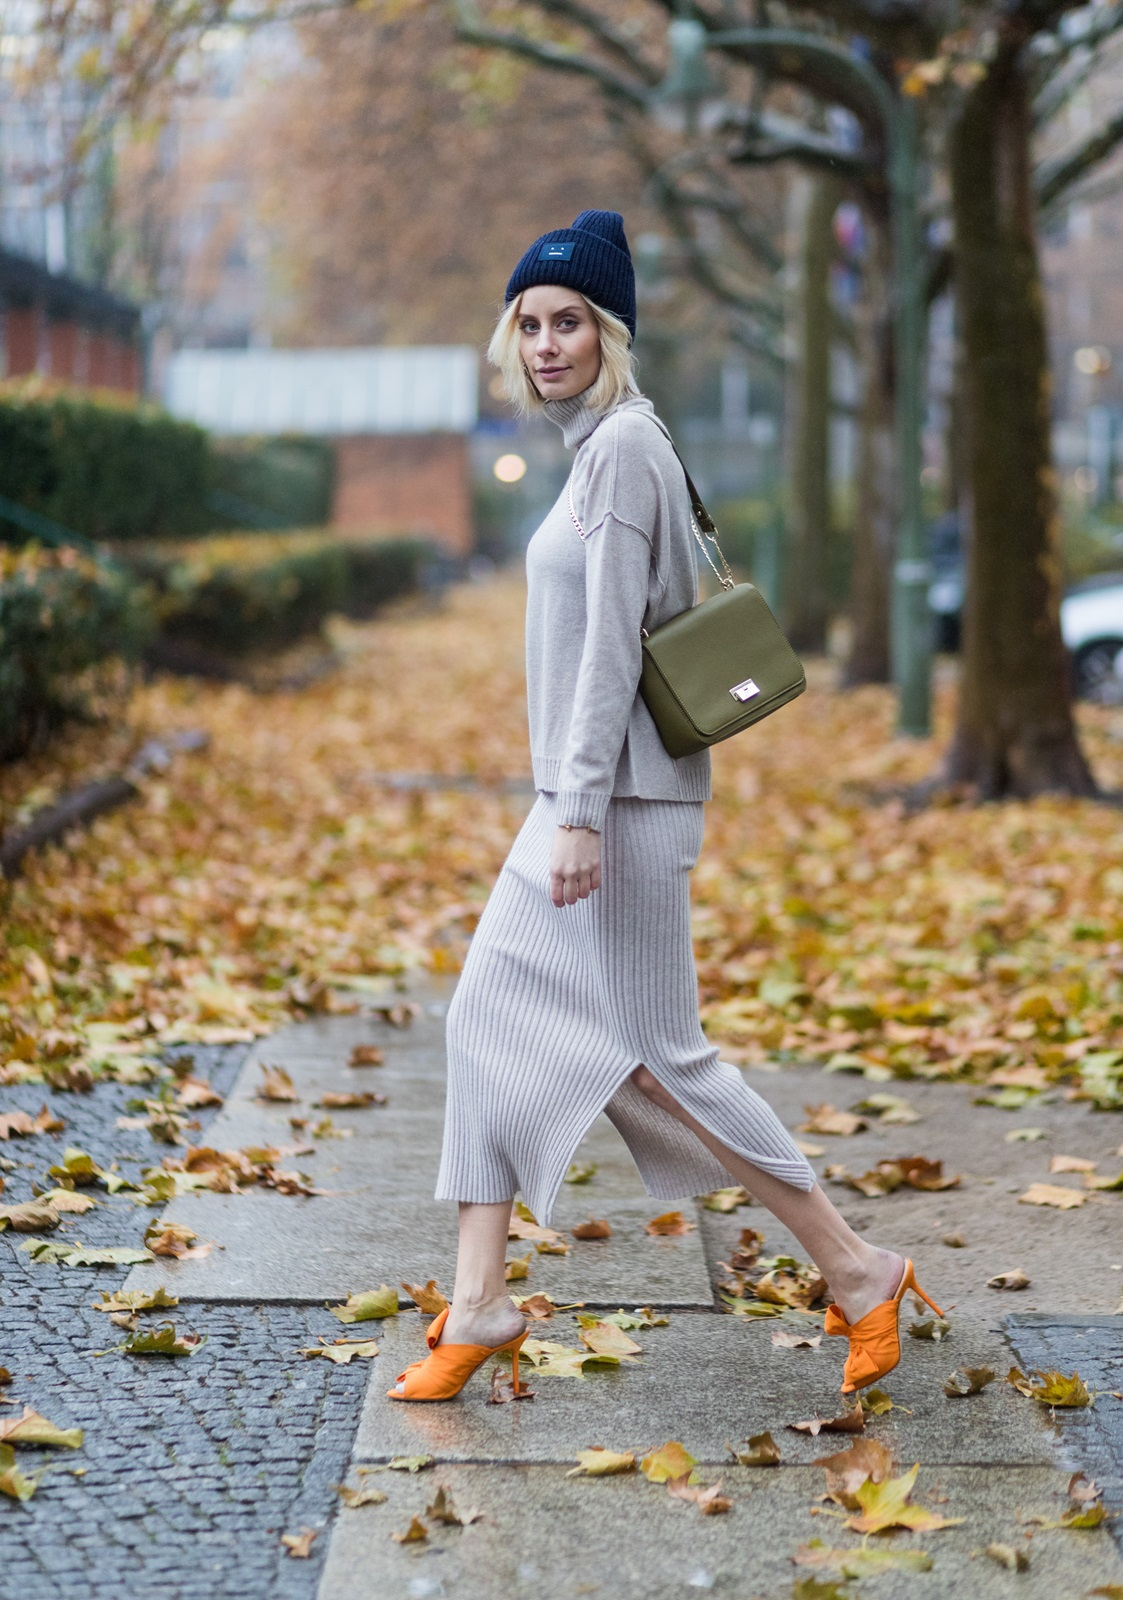 BERLIN, GERMANY - NOVEMBER 16: Lisa Hahnbueck (@lisarvd) wearing Allude Cashmere Turtle Neck Beige Melange, Allude Cashmere Knit Skirt Beige Melange, Aigner Lucy Bag in Moss Green, Charlotte Olympia Orange Ilona Silkmules with Bow / Bow Mules, navy Acne Studios Pansy Beanie Hat on November 16, 2016 in Berlin, Germany. (Photo by Christian Vierig/Getty Images) *** Local Caption *** Lisa Hahnbueck